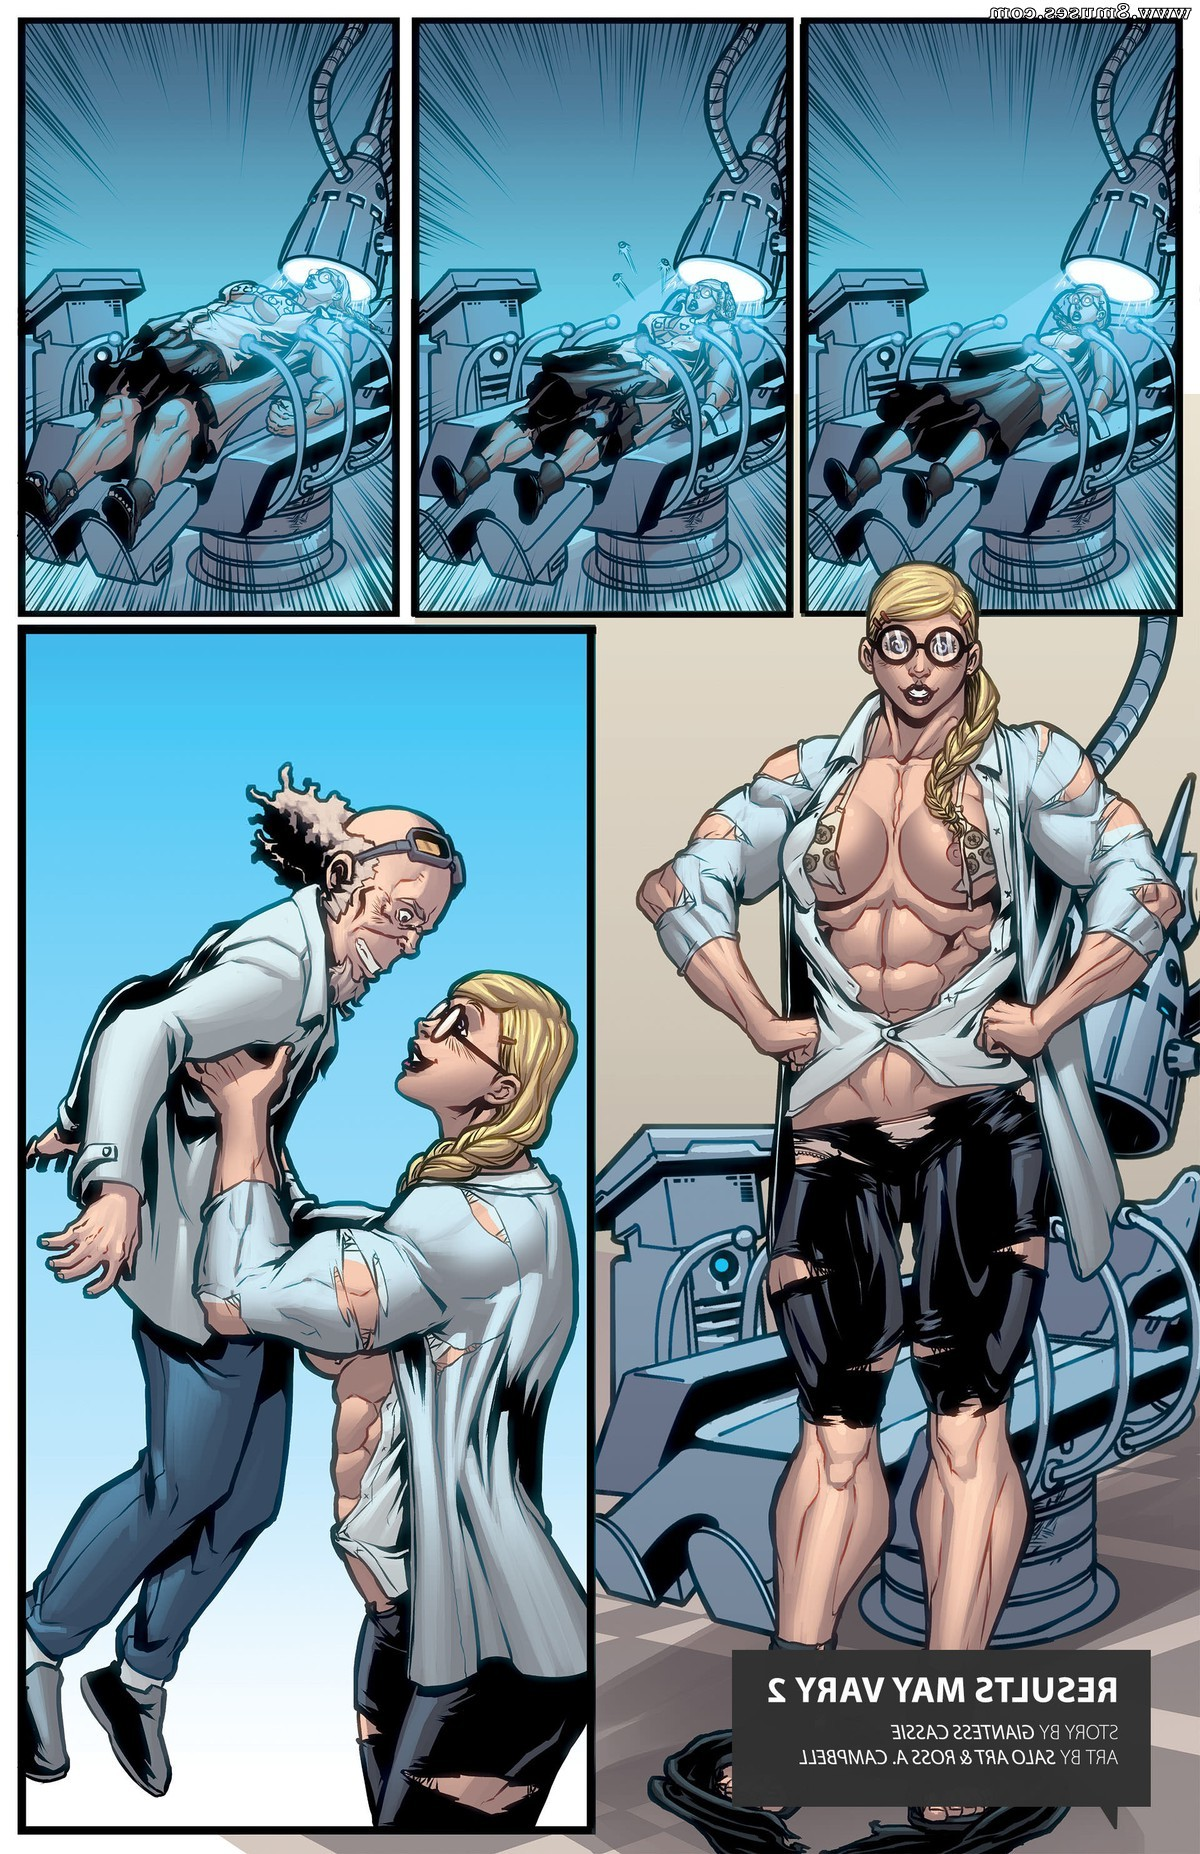 MuscleFan-Comics/Stone-Cold/Issue-1 Stone_Cold_-_Issue_1_27.jpg